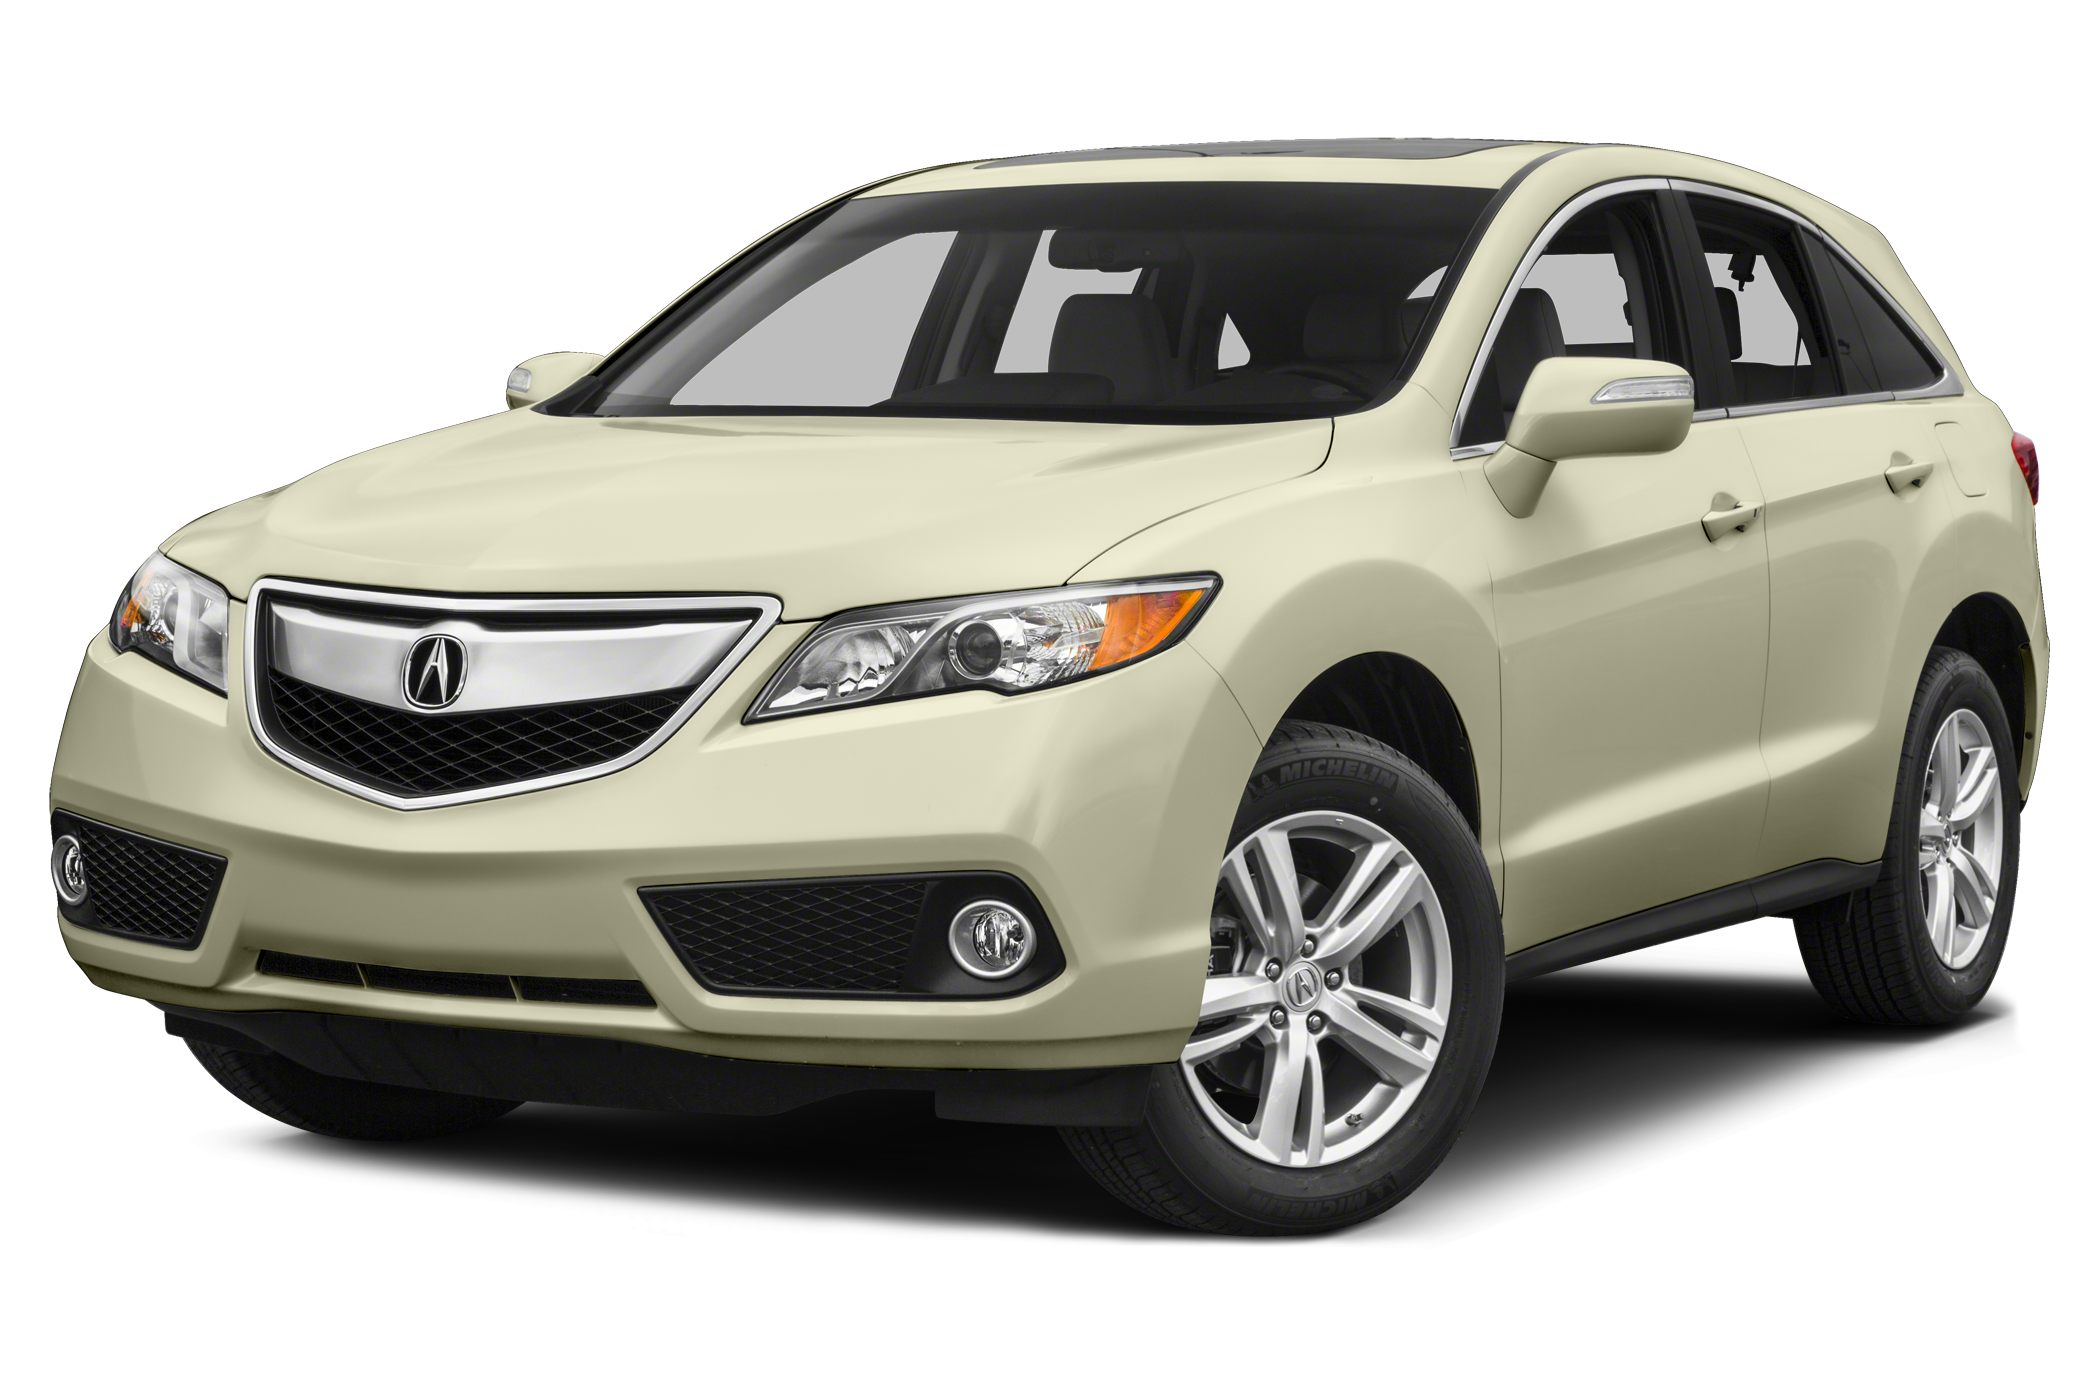 2015 Acura RDX Technology Miles 2Color Forged Silver Metallic Stock A026460 VIN 5J8TB4H59FL02